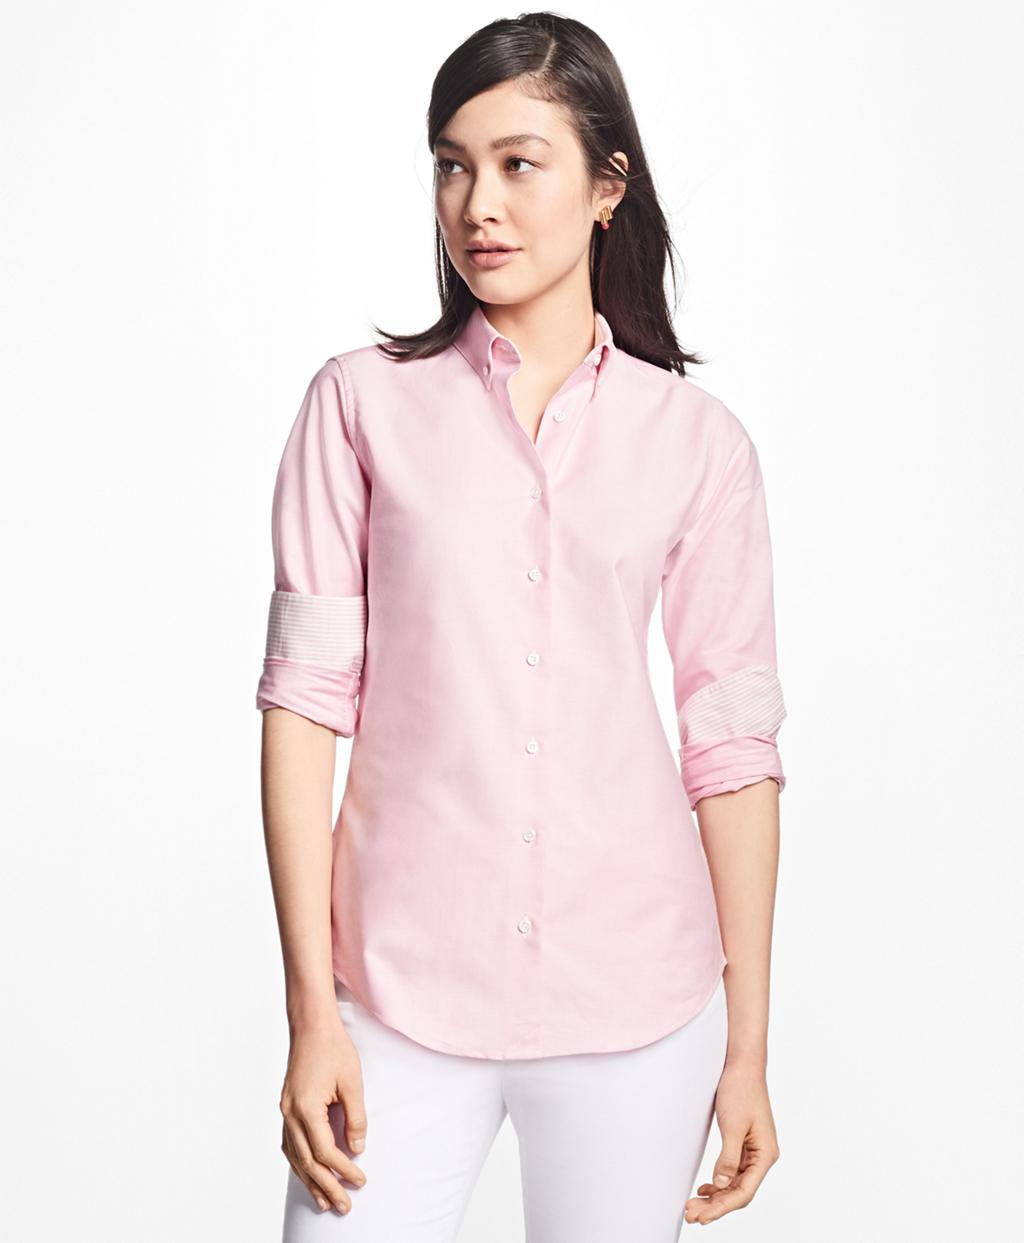 f3bd9174d9e Brooks Brothers. Women s Pink Classic-fit Supima® Cotton Oxford Button-down  Shirt